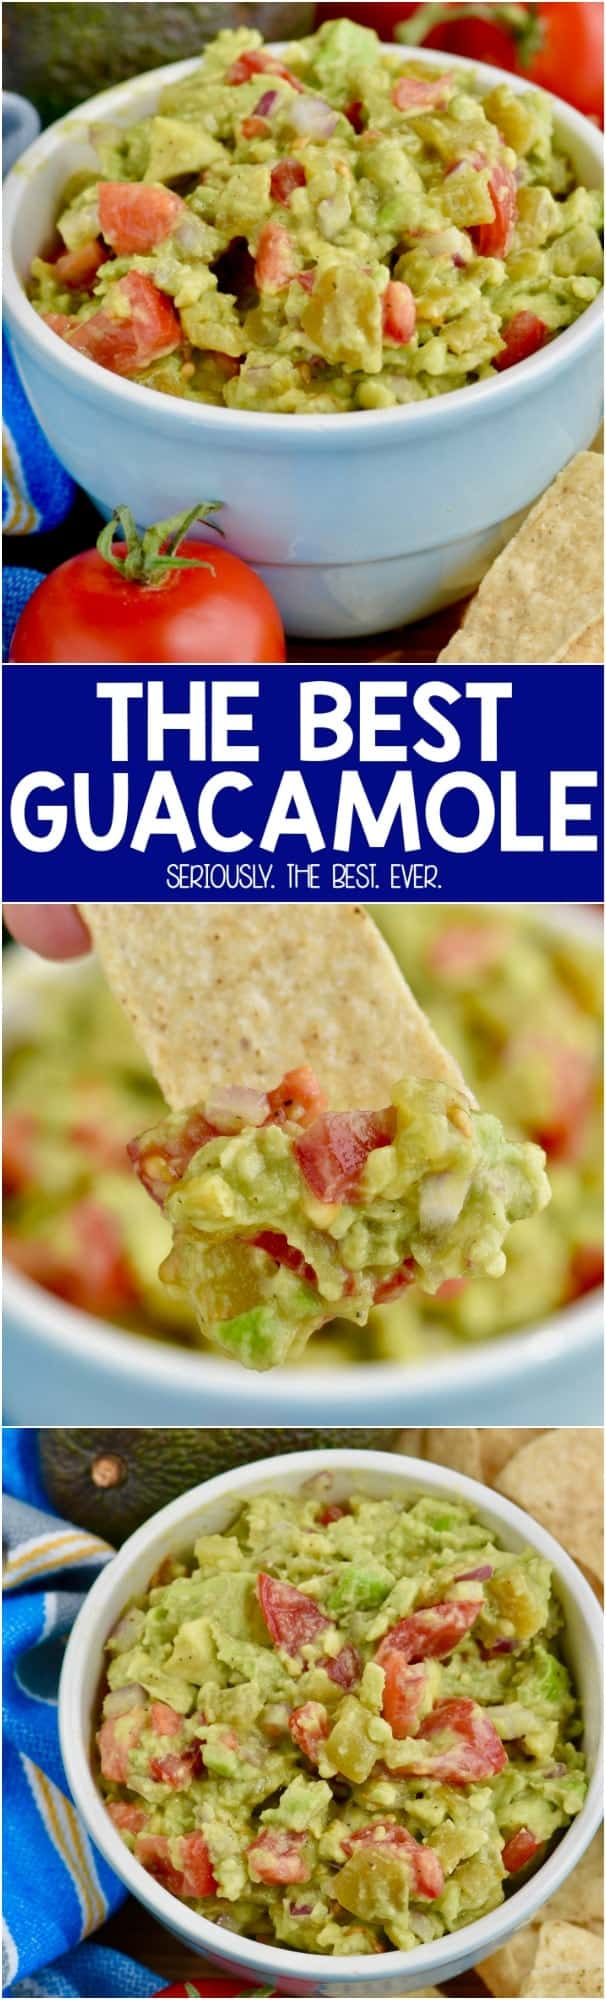 The Best Guacamole - Wine & Glue